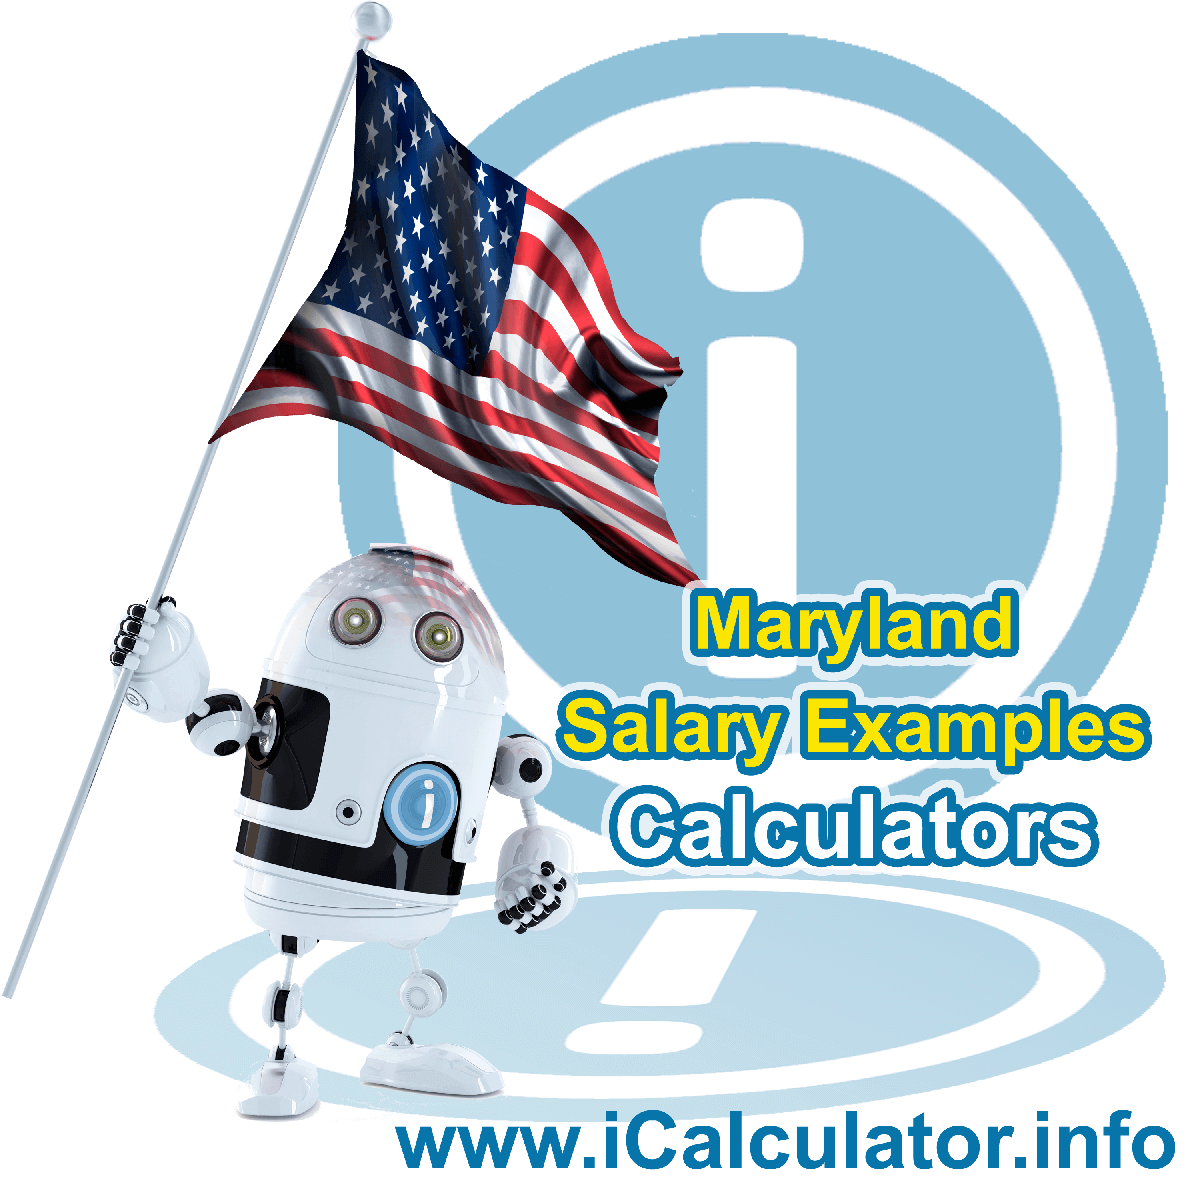 Maryland Salary Example for $180,000.00 in 2020 | iCalculator | $180,000.00 salary example for employee and employer paying Maryland State tincome taxes. Detailed salary after tax calculation including Maryland State Tax, Federal State Tax, Medicare Deductions, Social Security, Capital Gains and other income tax and salary deductions complete with supporting Maryland state tax tables